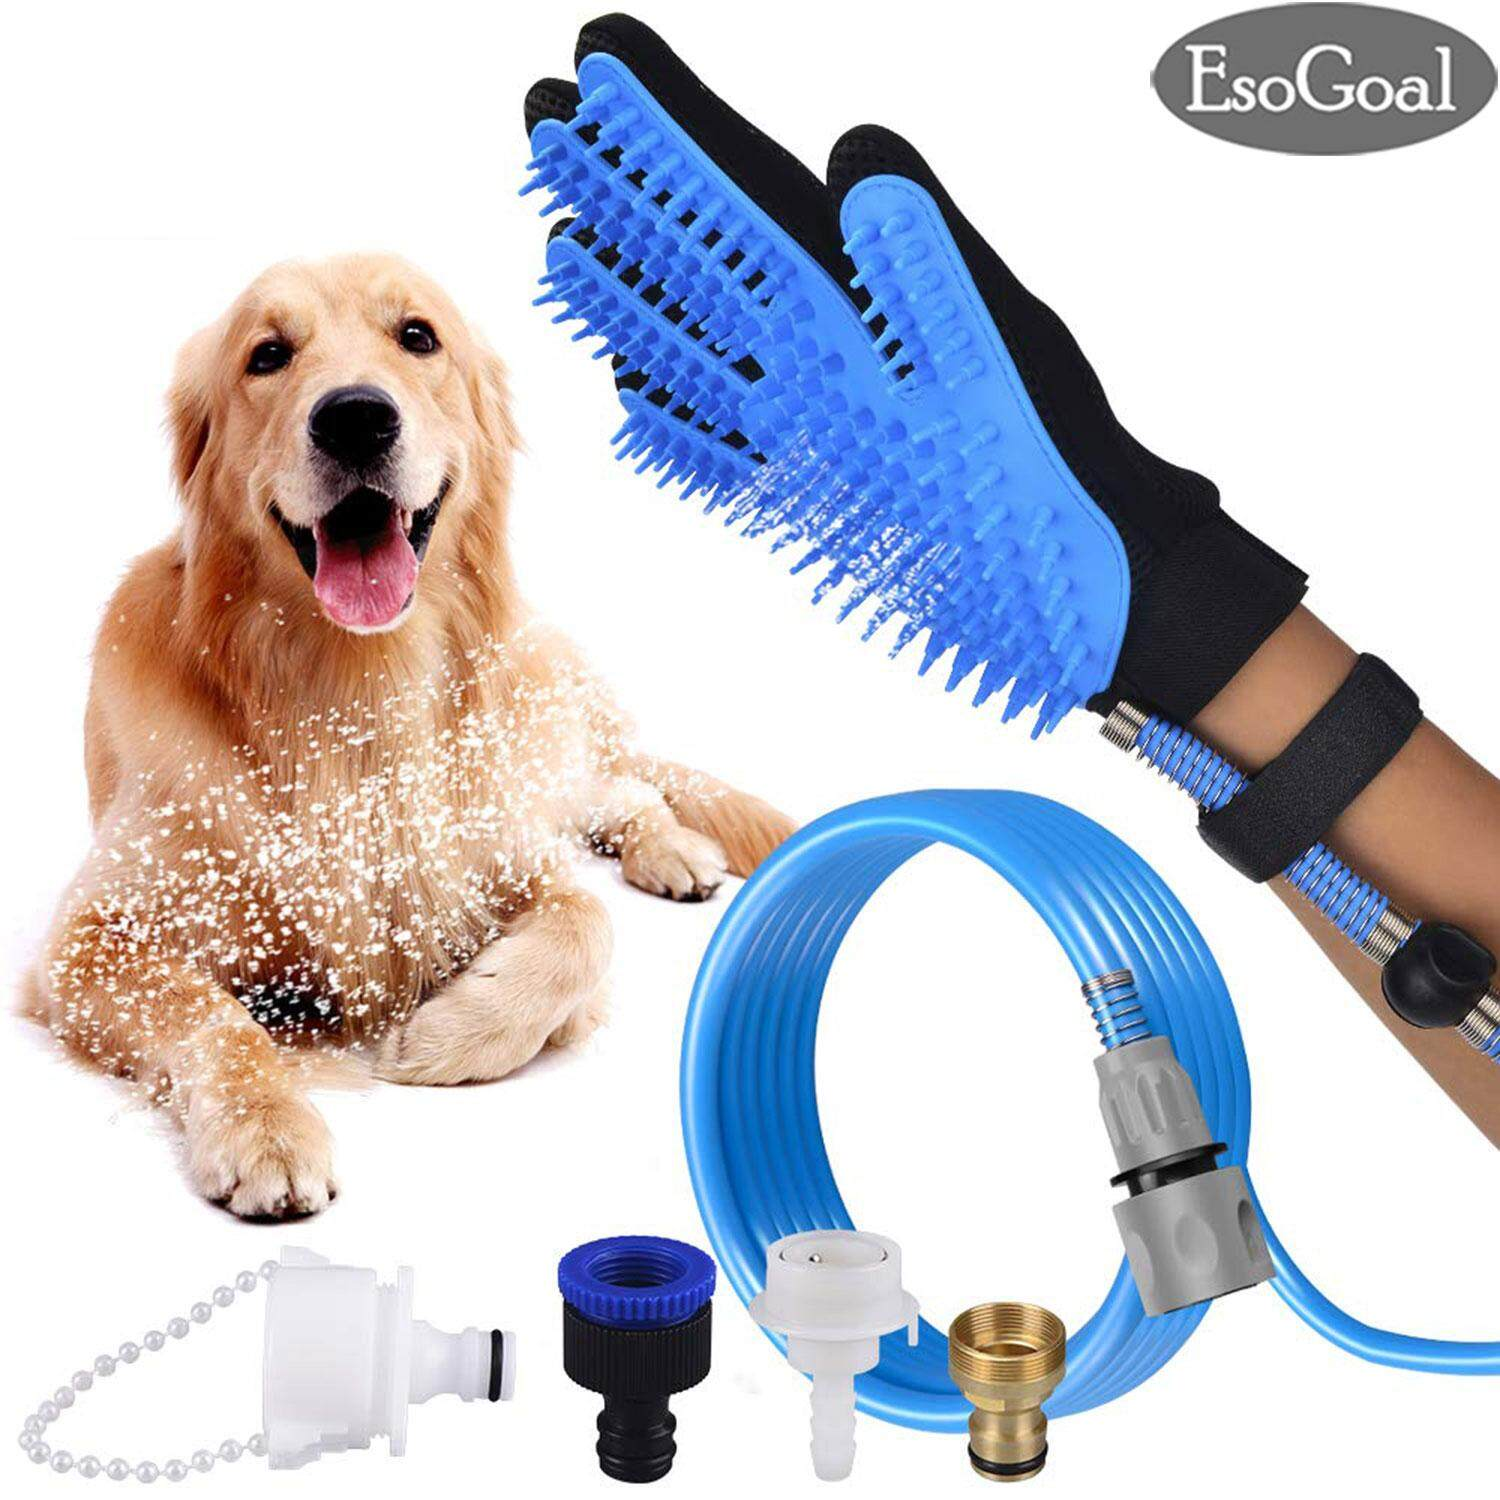 Esogoal Pet Bathing Grooming Gloves Deshedding Brush Glove Pet Shower Sprayer Scrubber Pet Hair Remover Glove Dog Cat Gentle Efficient Massage Grooming Pet Bath Clean Brush Gloves With 3 Faucet Adapters By Esogoal.